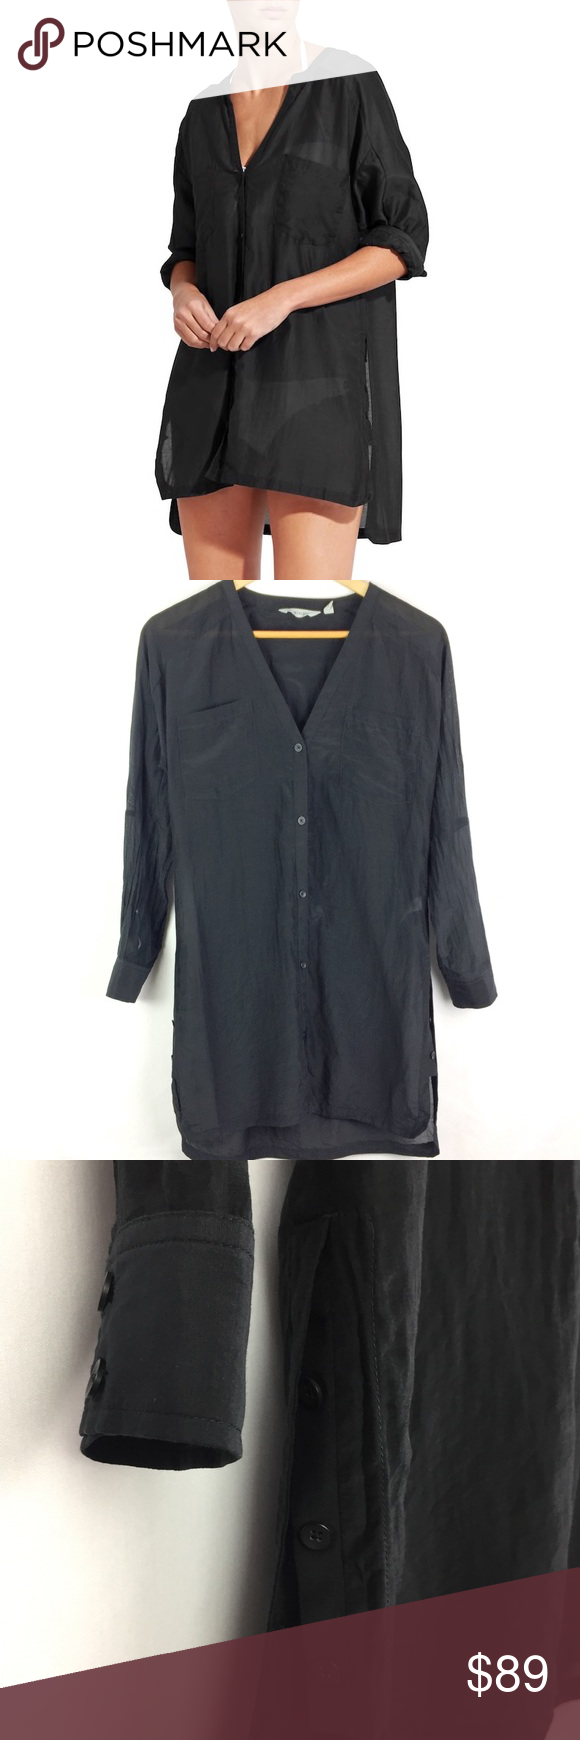 9e72fa6832 Athleta Kaftan Shirt Black Semi-Sheer Button Down •Athleta Kaftan Shirt  Black Button Down